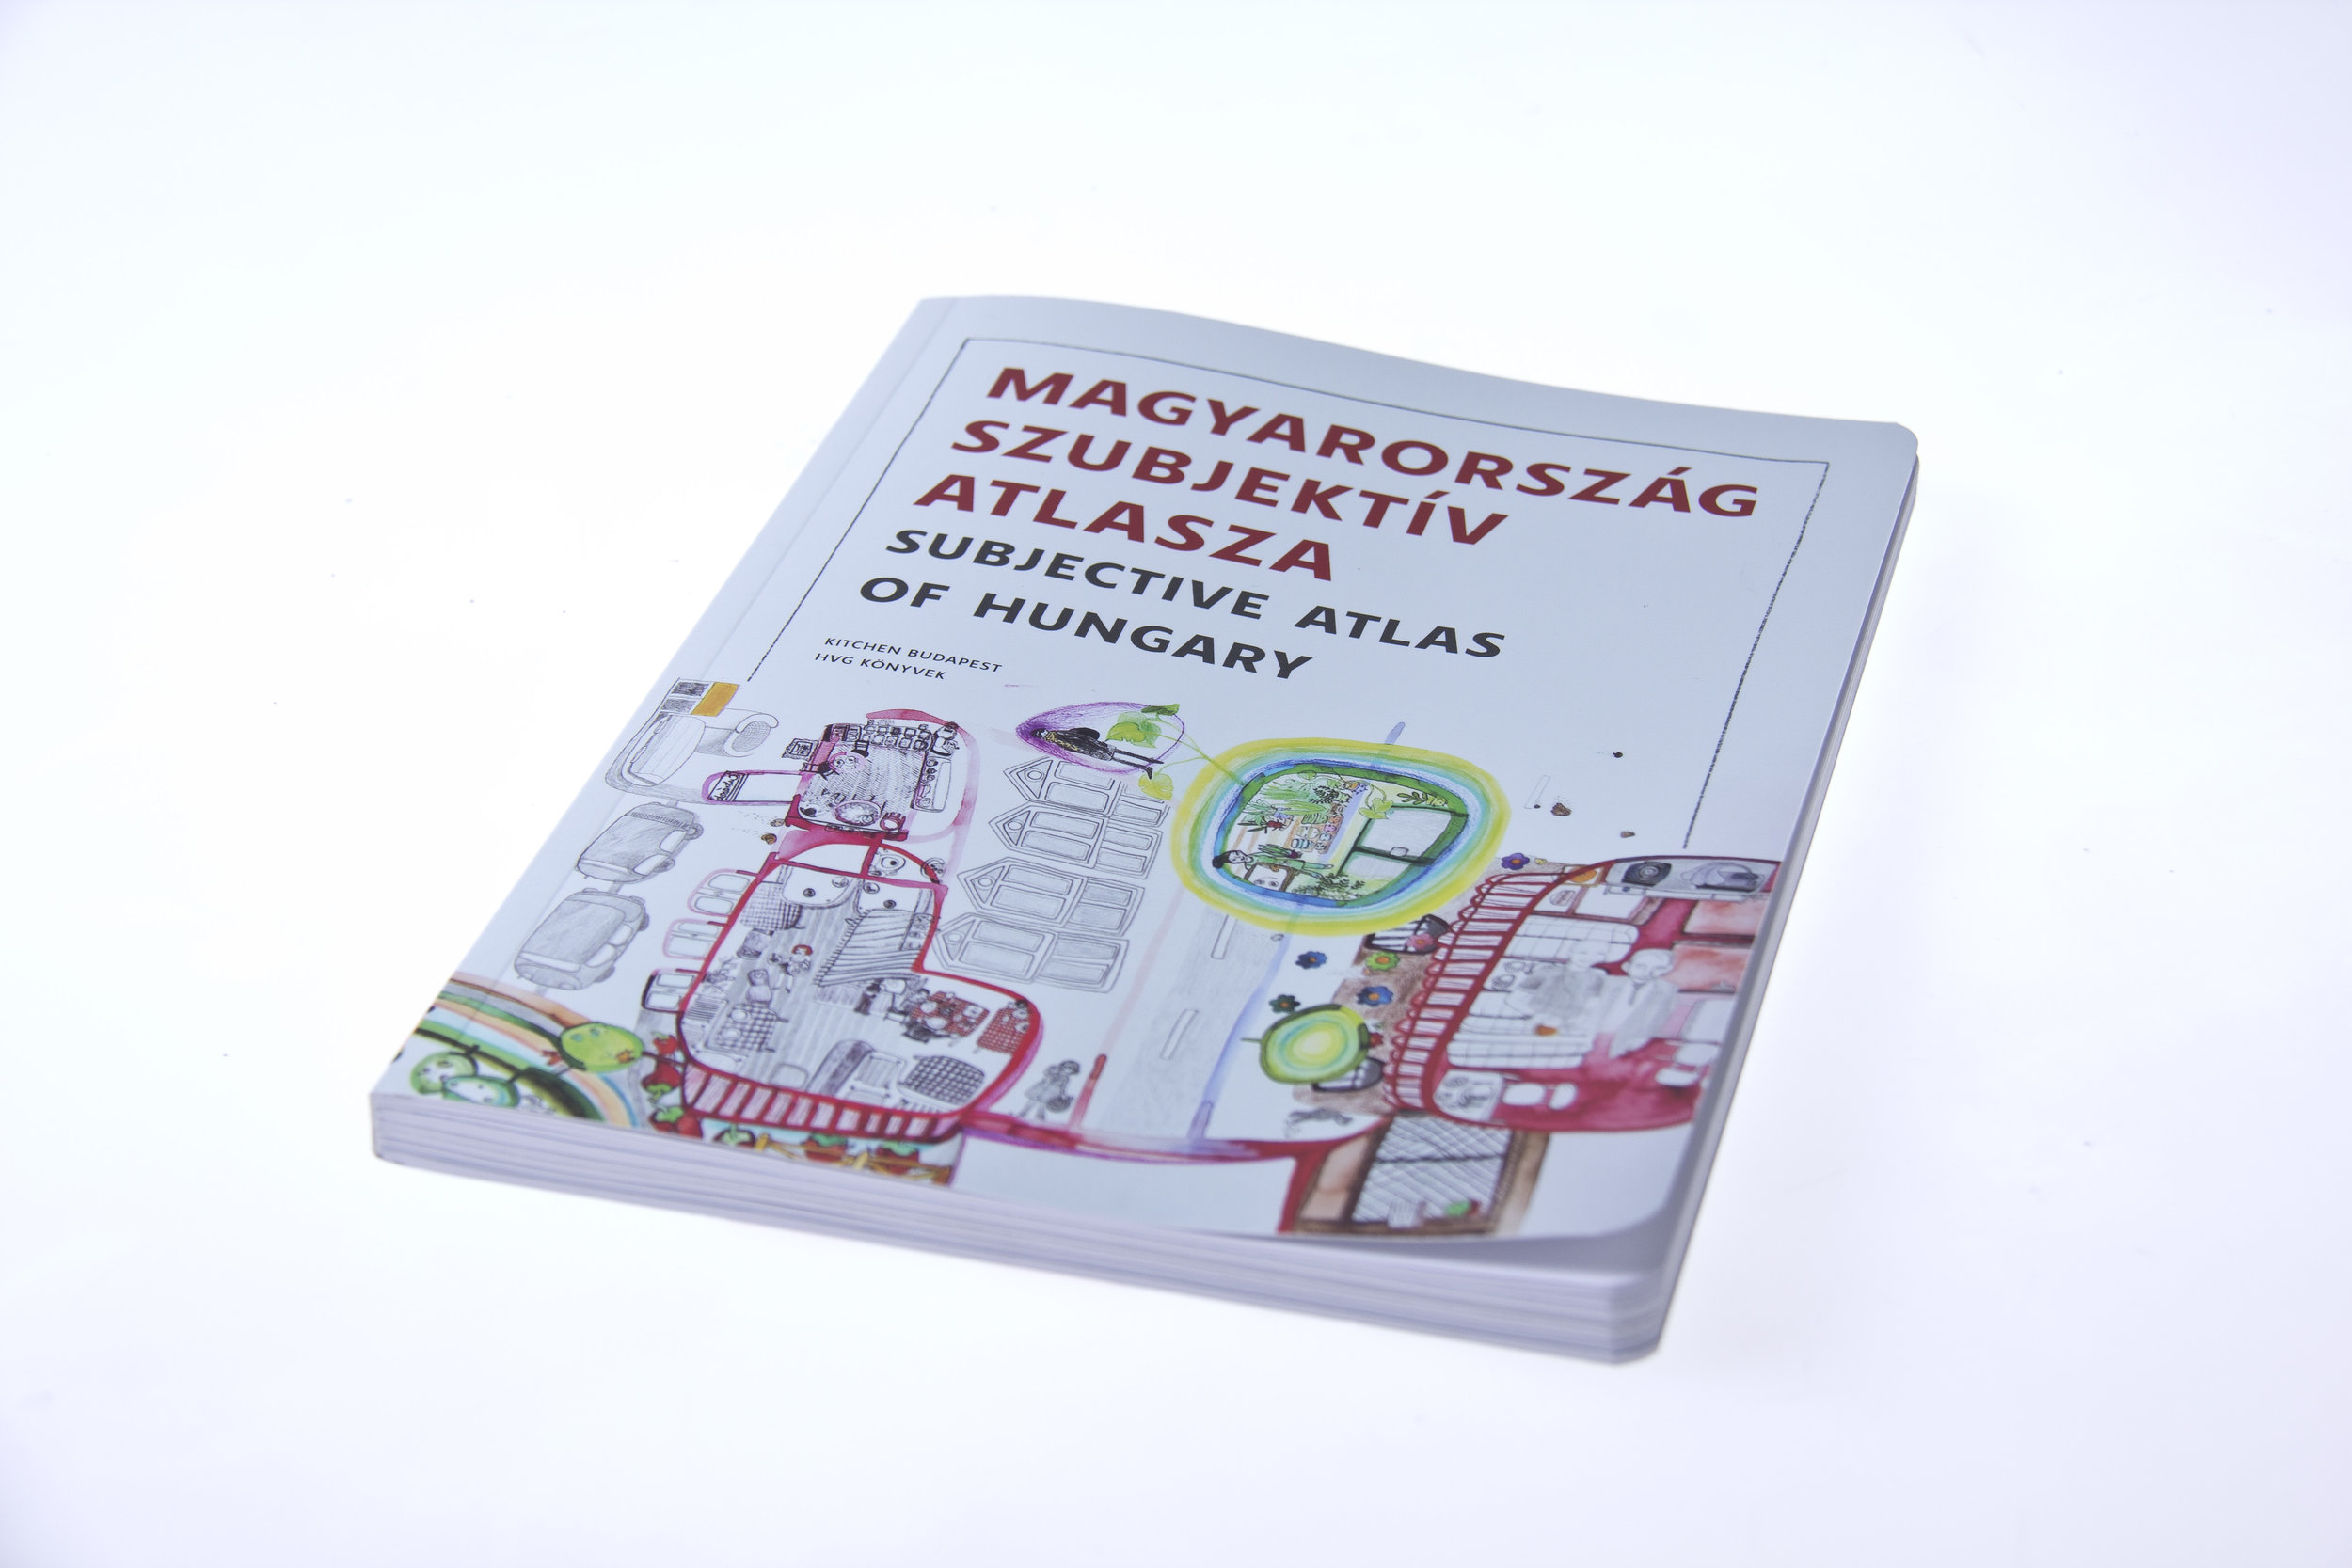 Subjective_Atlas_of_Hungary_cover_large.jpg